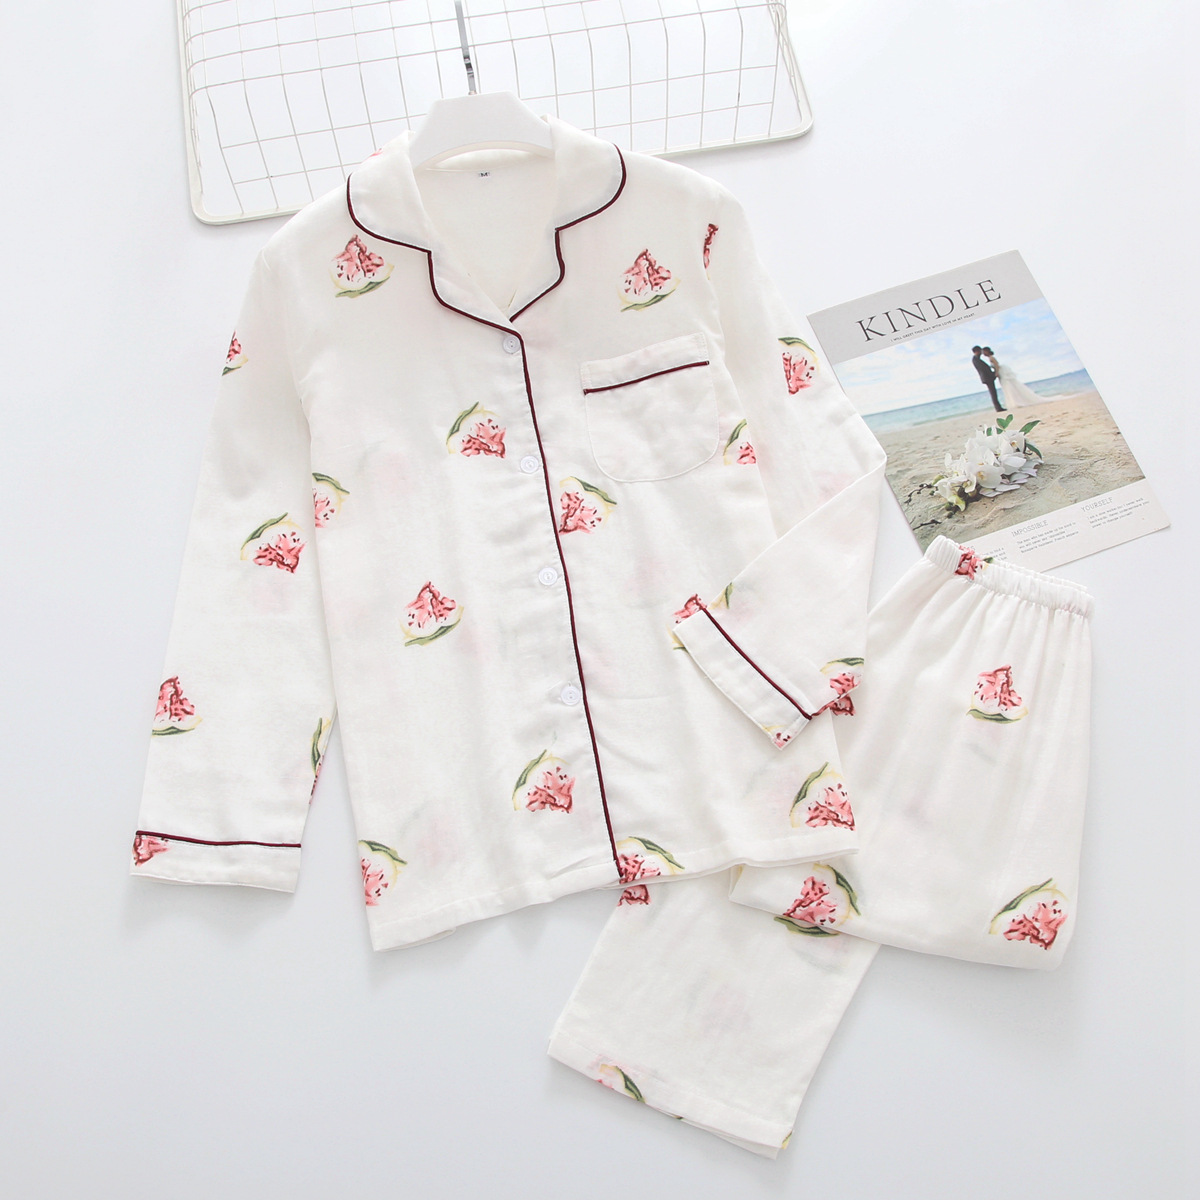 Spring∑mer Long Sleeves Cotton Gauze Thin Korean Pajamas Girls Loungewear Women Plus Size Pajamas Womens Pajama Set 2 Suits